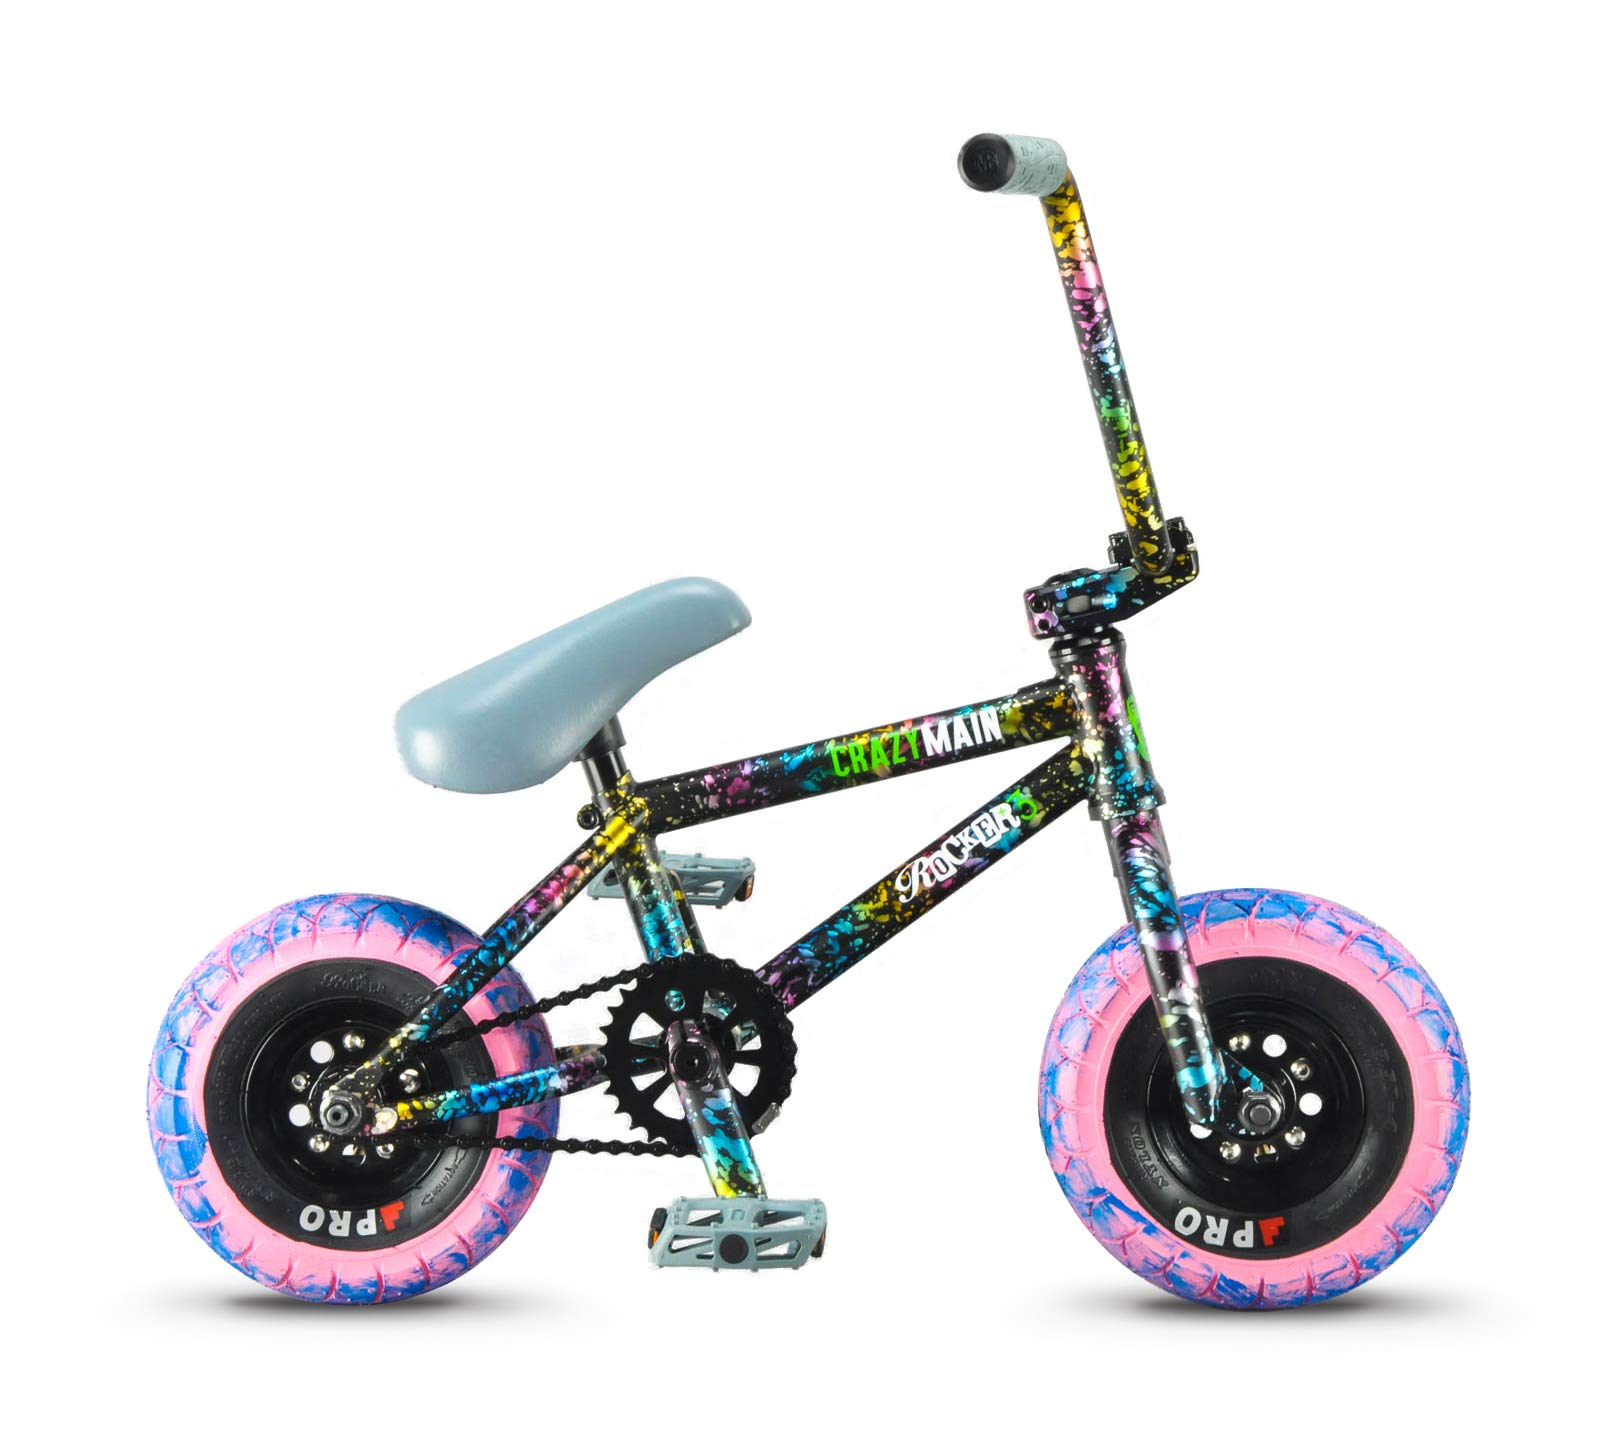 Rocker 3+ Freecoaster Crazy Main Splatter Mini BMX Bike: Amazon.es ...